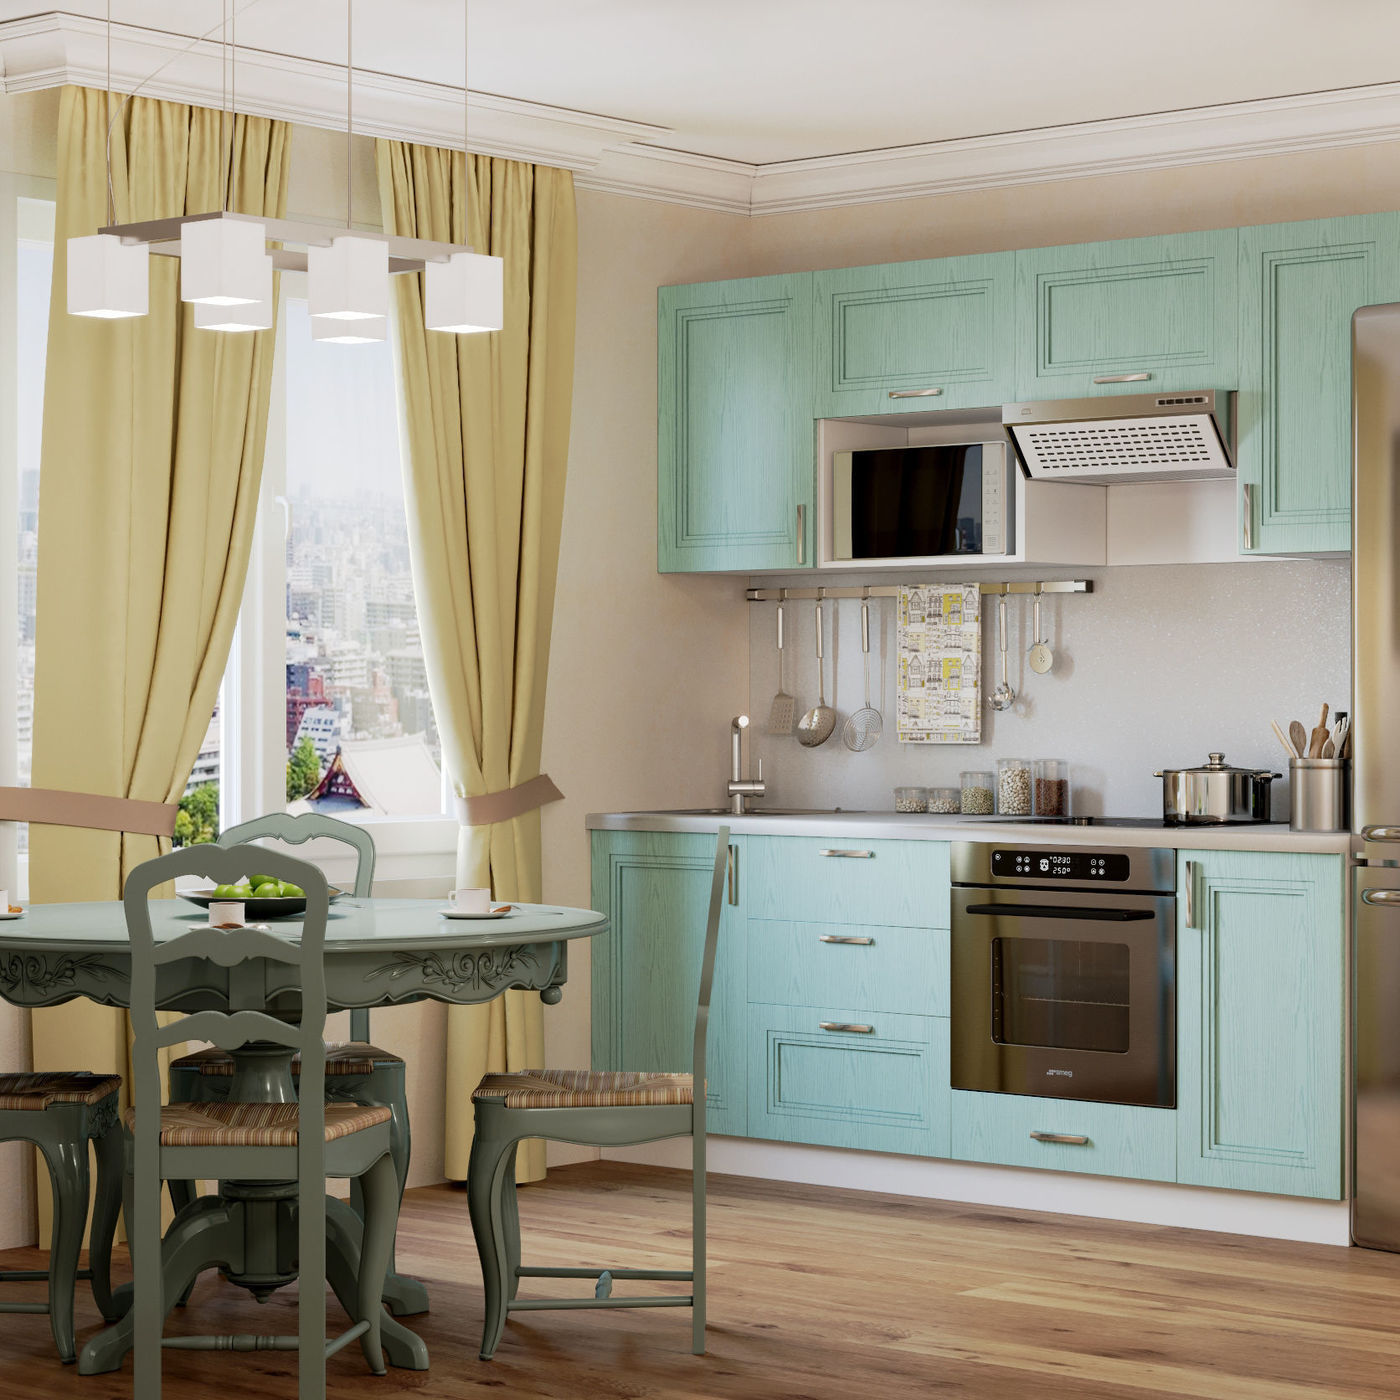 3D visualization of the kitchen interior